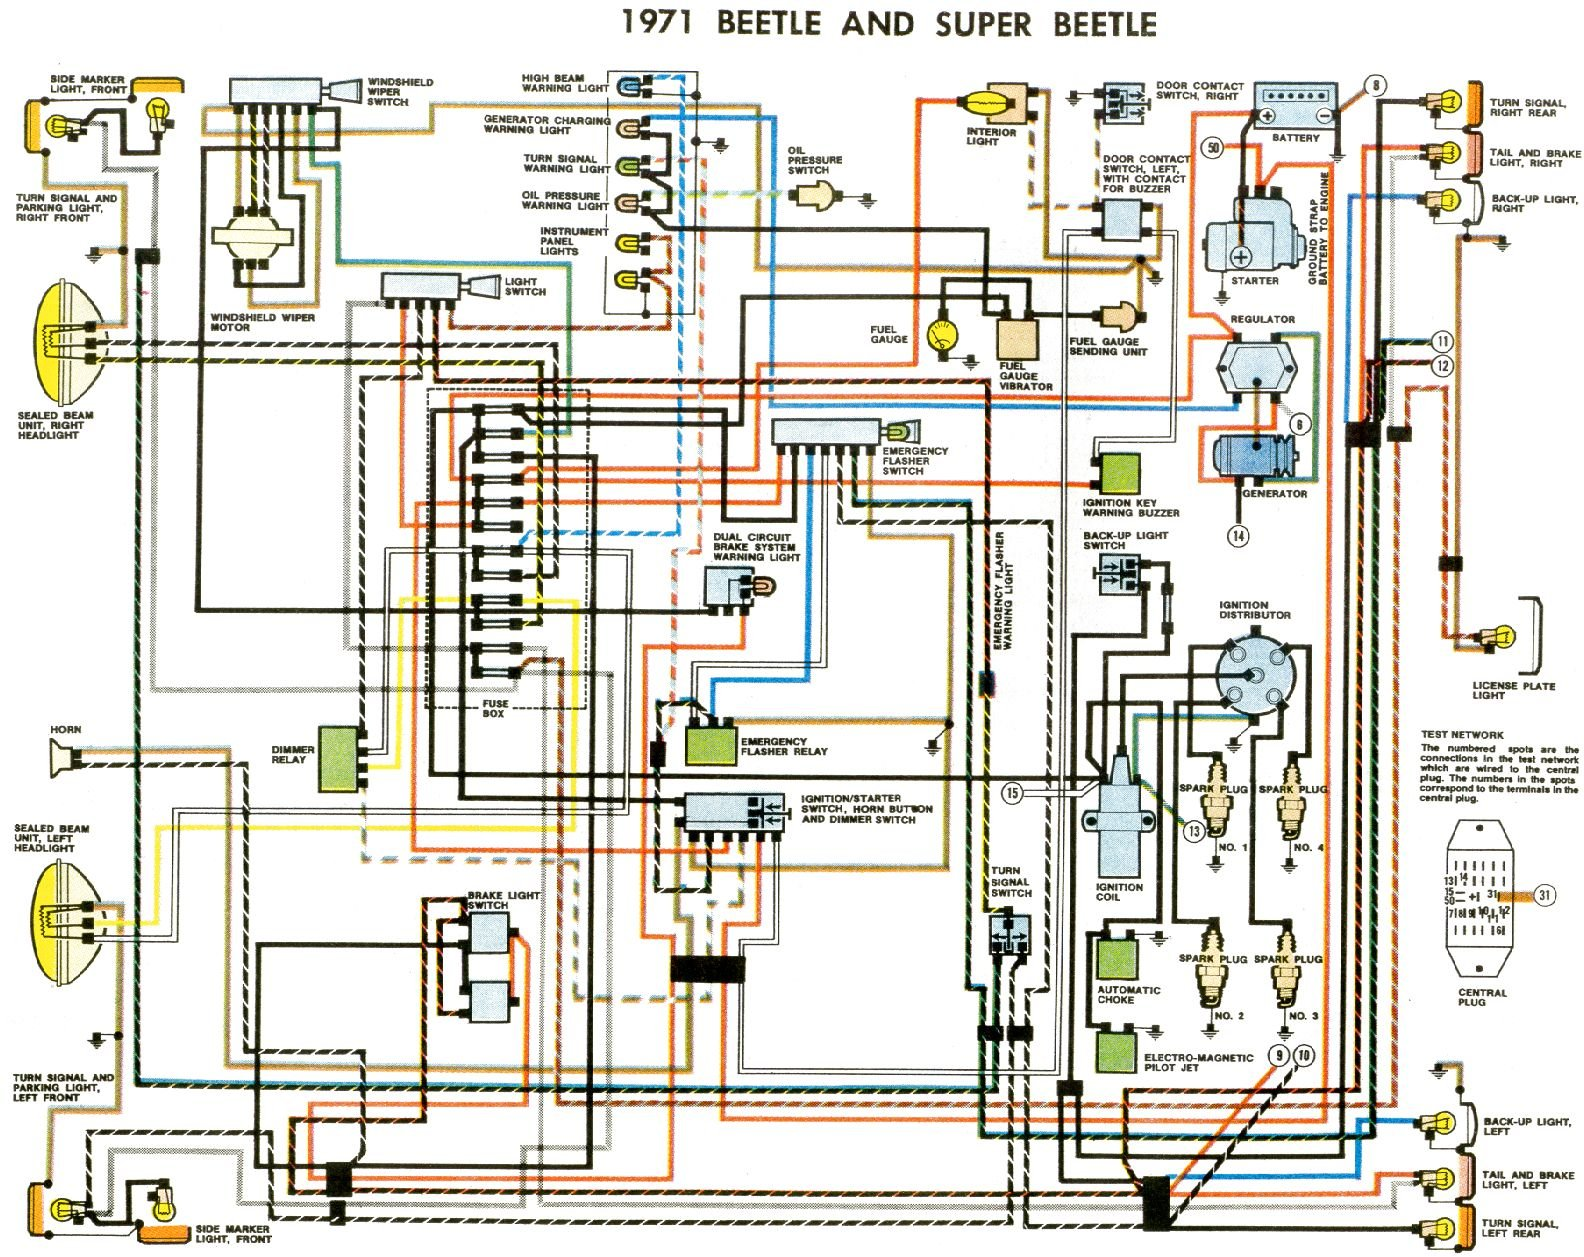 1971 beetle wiring diagram (usa) | thegoldenbug.com 2000 vw new beetle wiring diagram